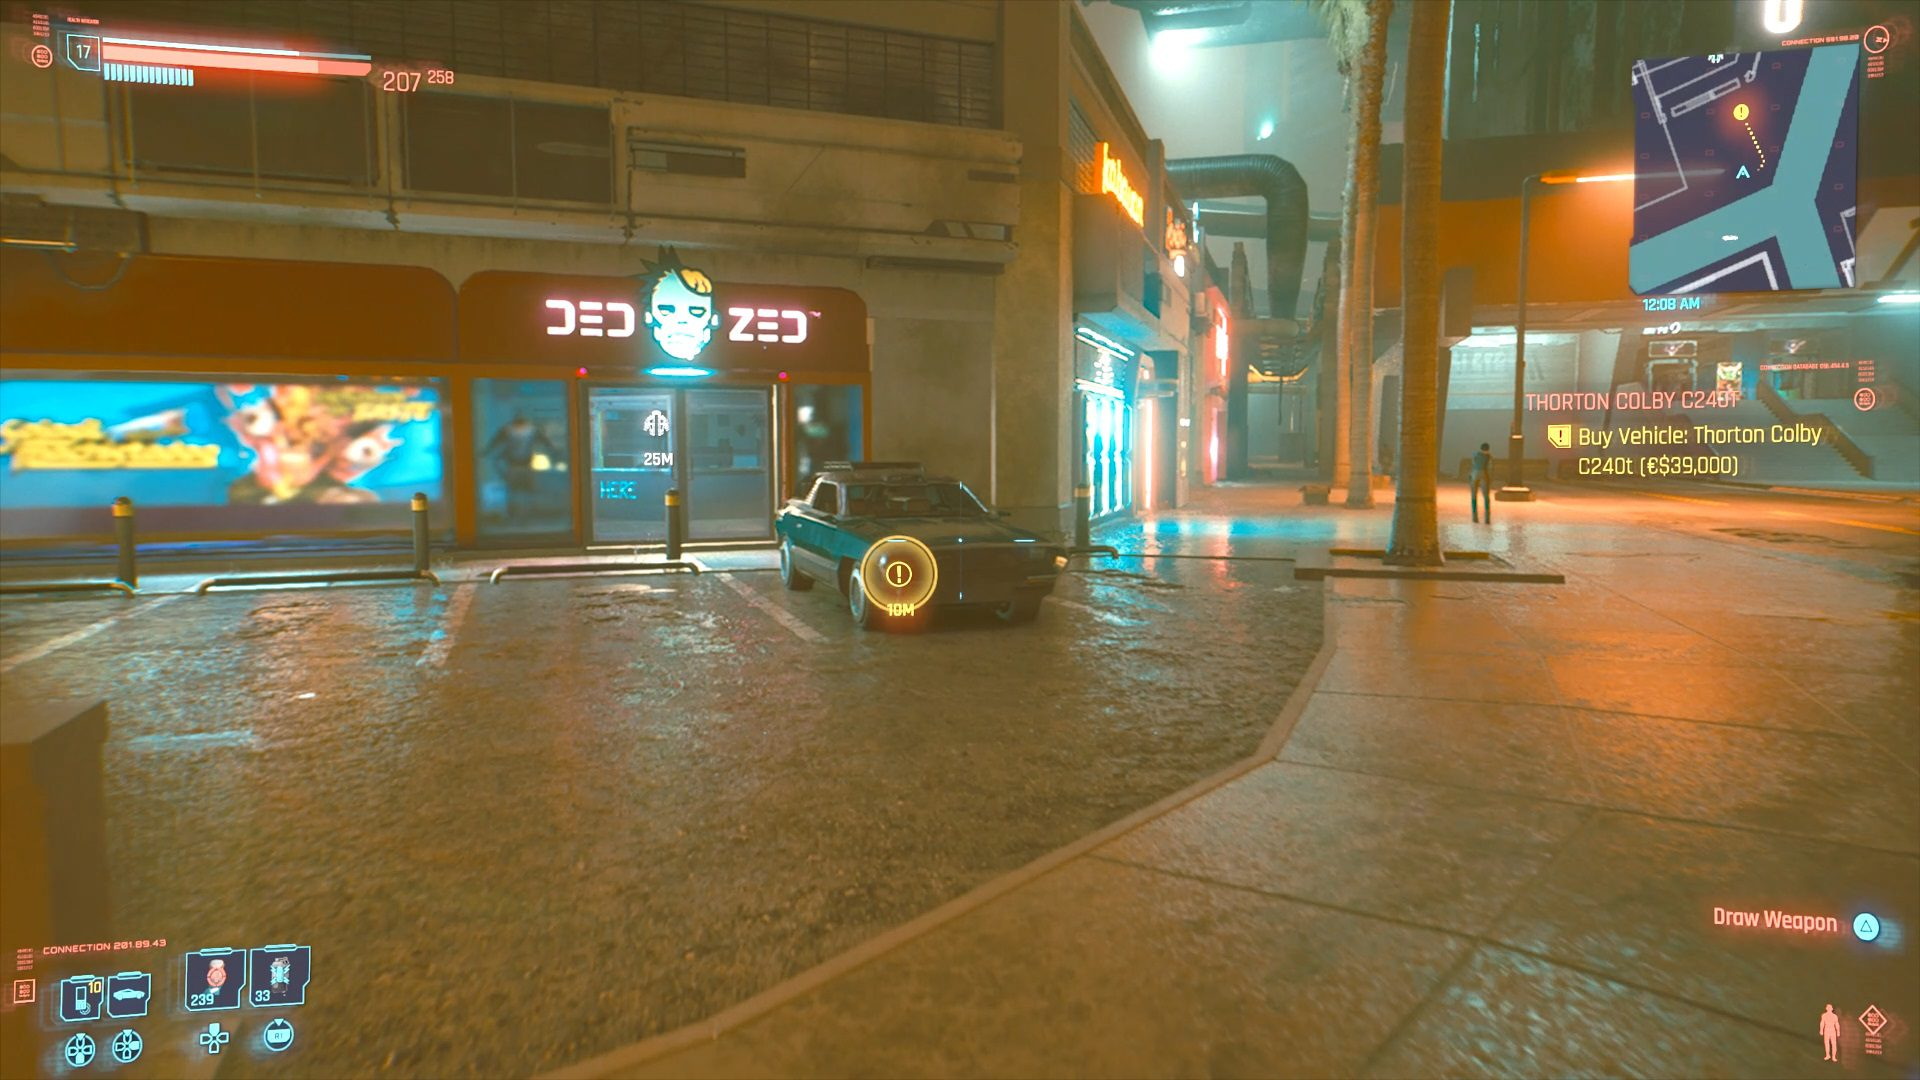 Cyberpunk 2077 Thorton Colby C240T Vehicle Location